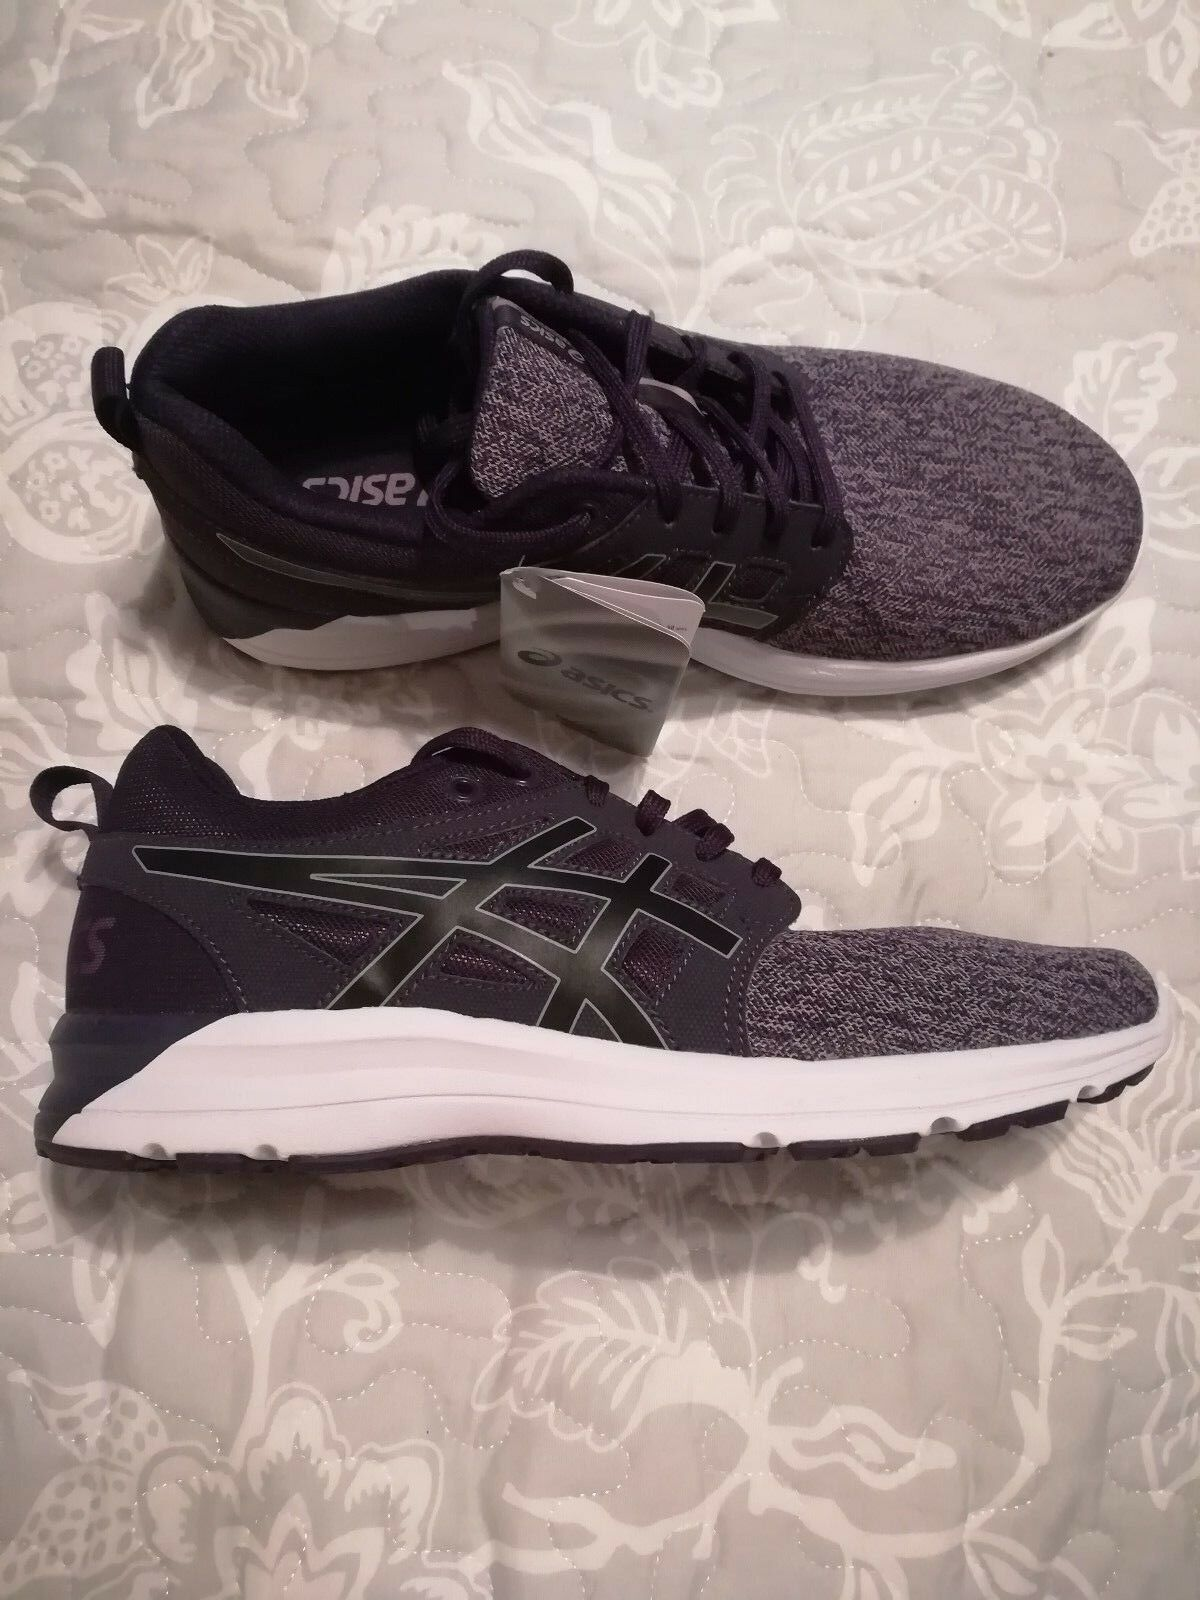 NEW Asics Womens Torrance Running shoe 8.5 purple